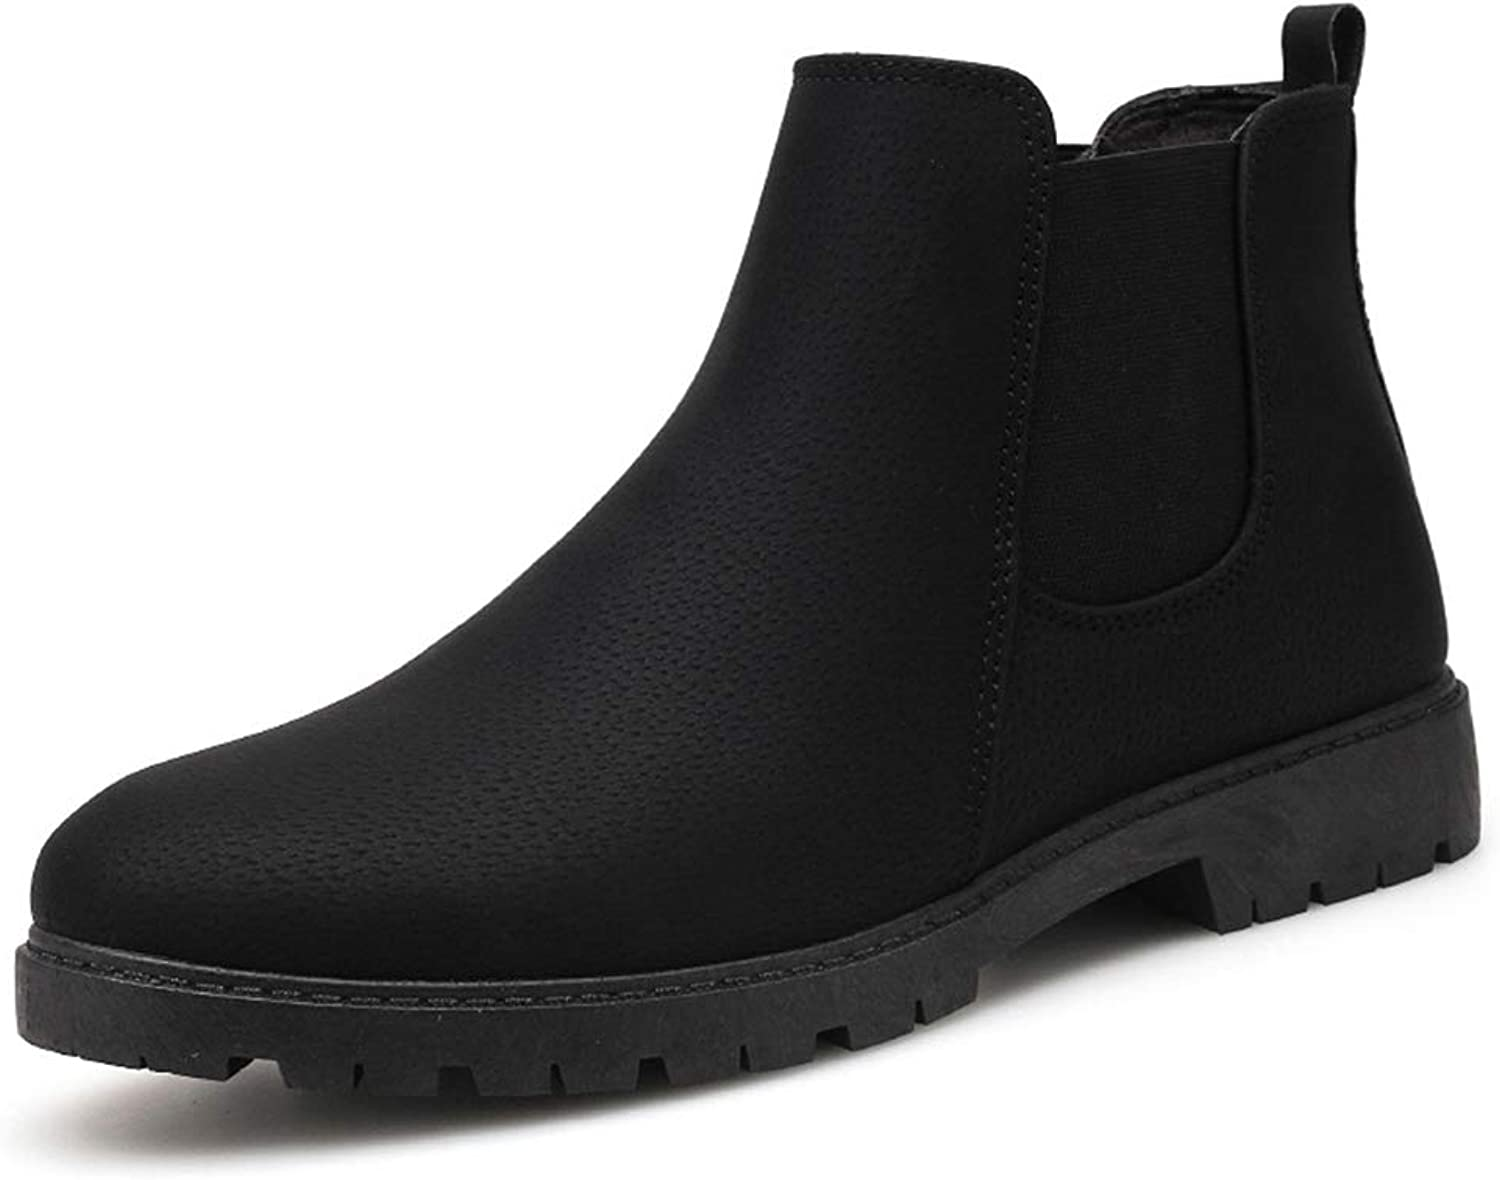 Men'S shoes, Fall Winter Retro New Ankle Boots British Sleeve Men'S Boots High-Top Chelsea Boots Martin shoes,B,44